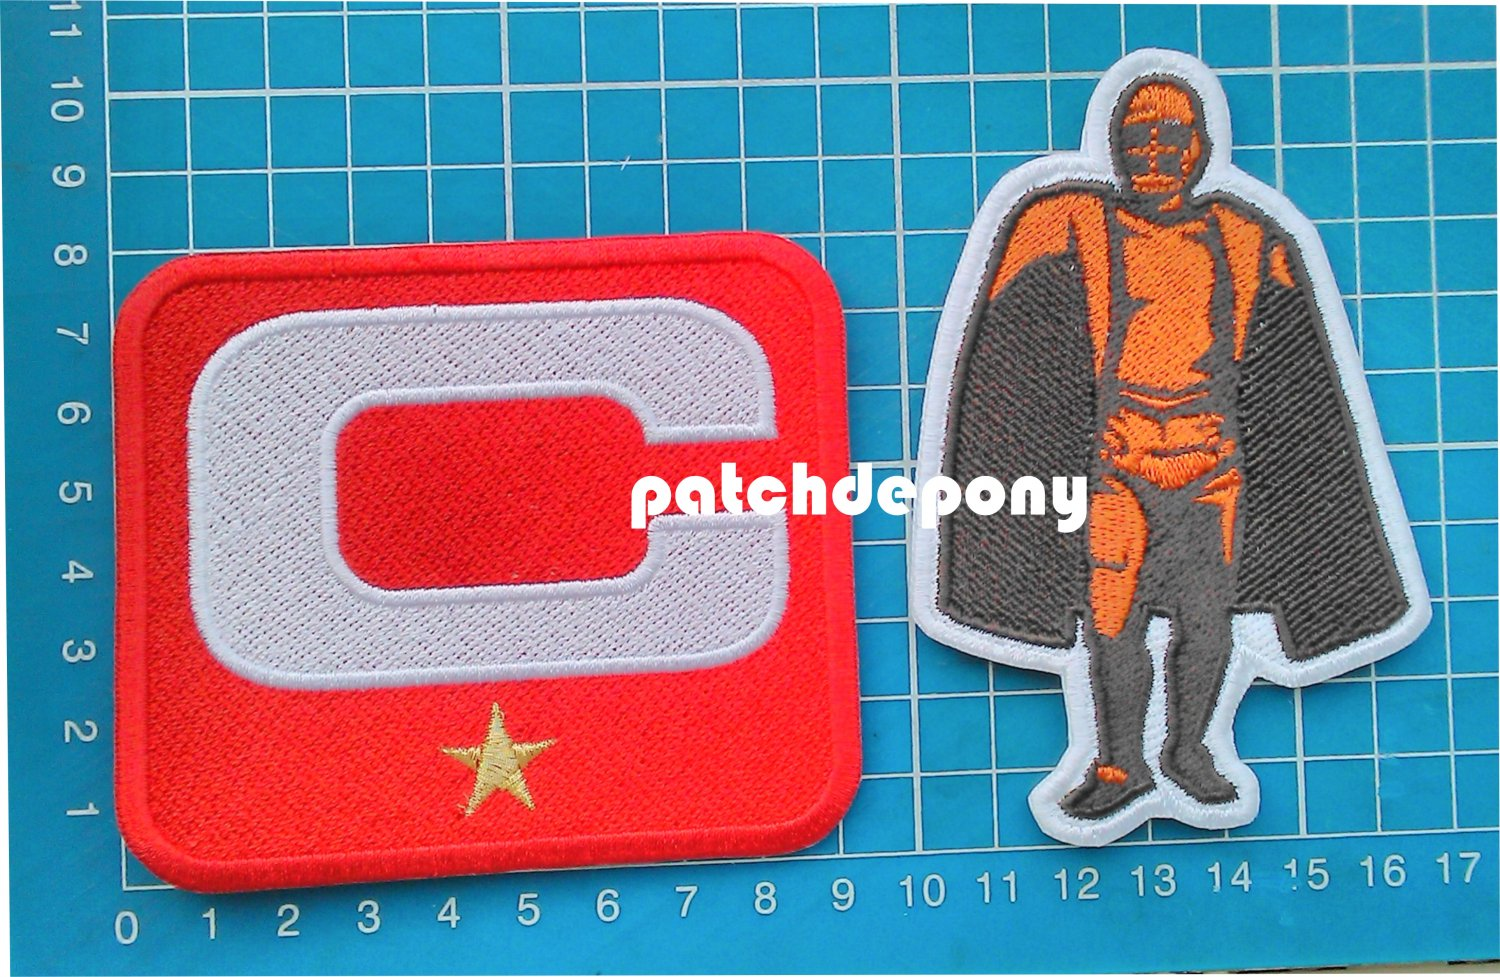 2019 Season Captain C patch RED 1 gold star + Walter Payton Man of Year Patch